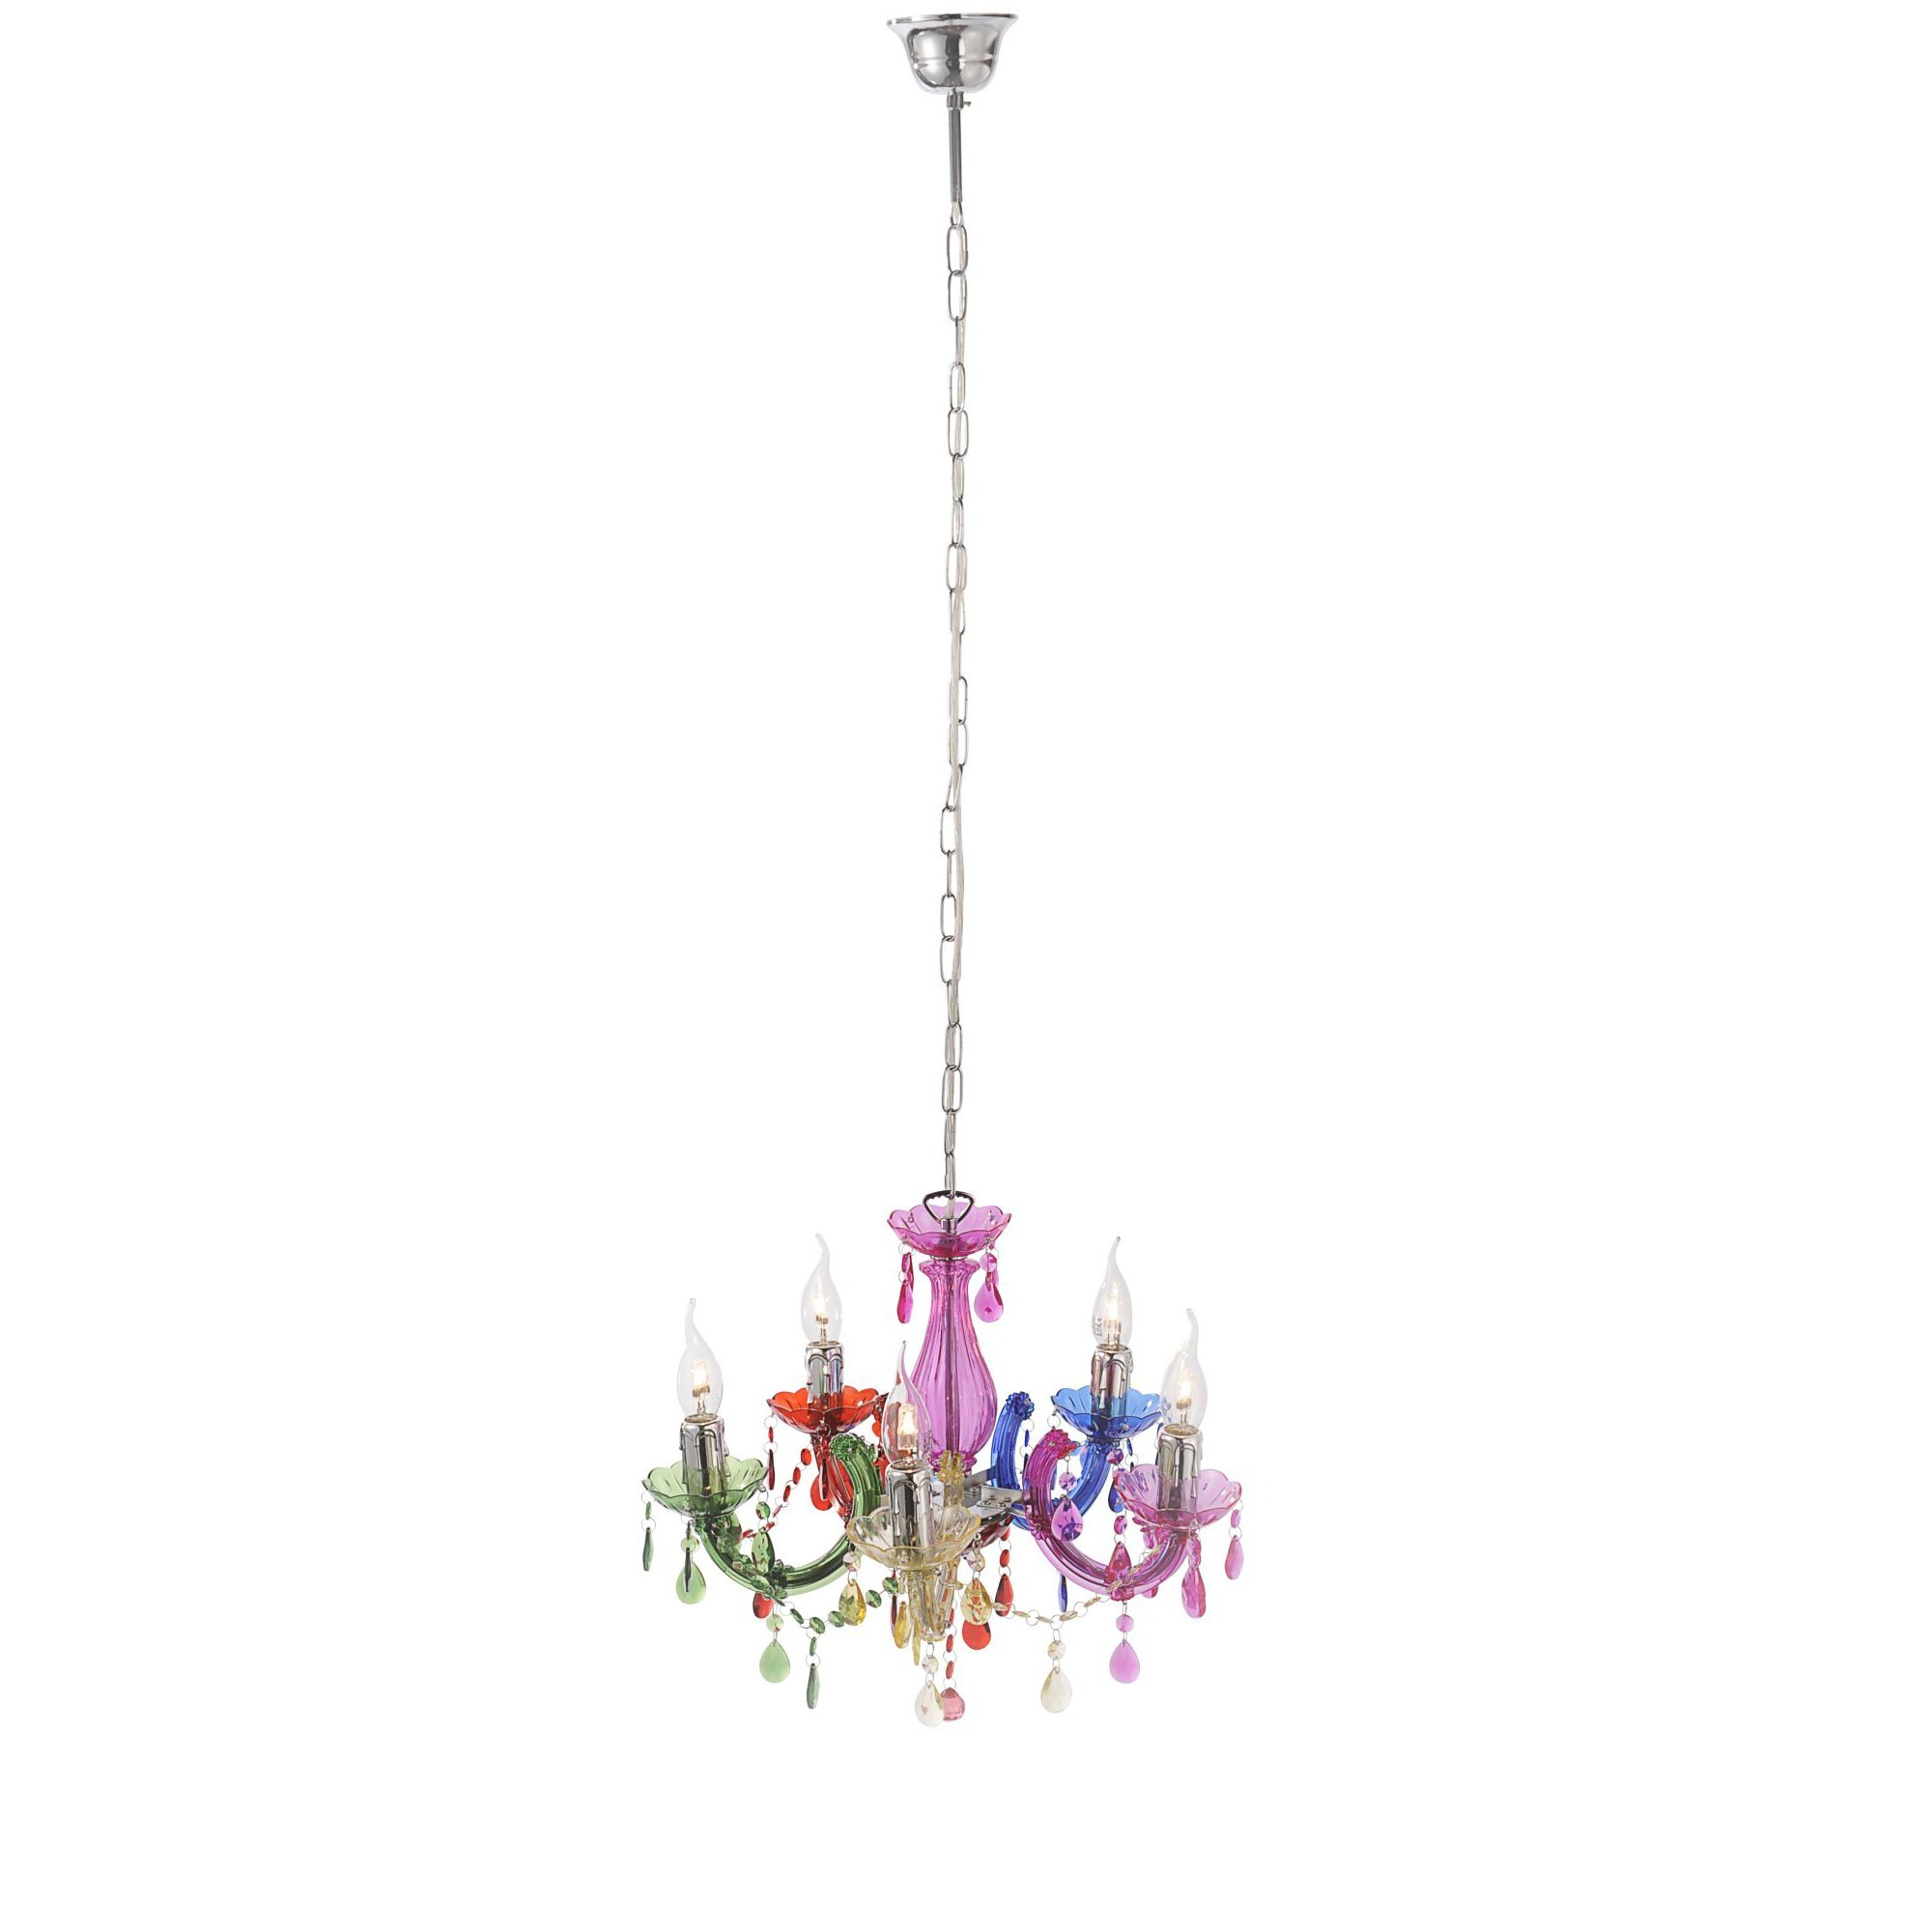 maar chrome products wofi led ambiente light chandelier shack pendant